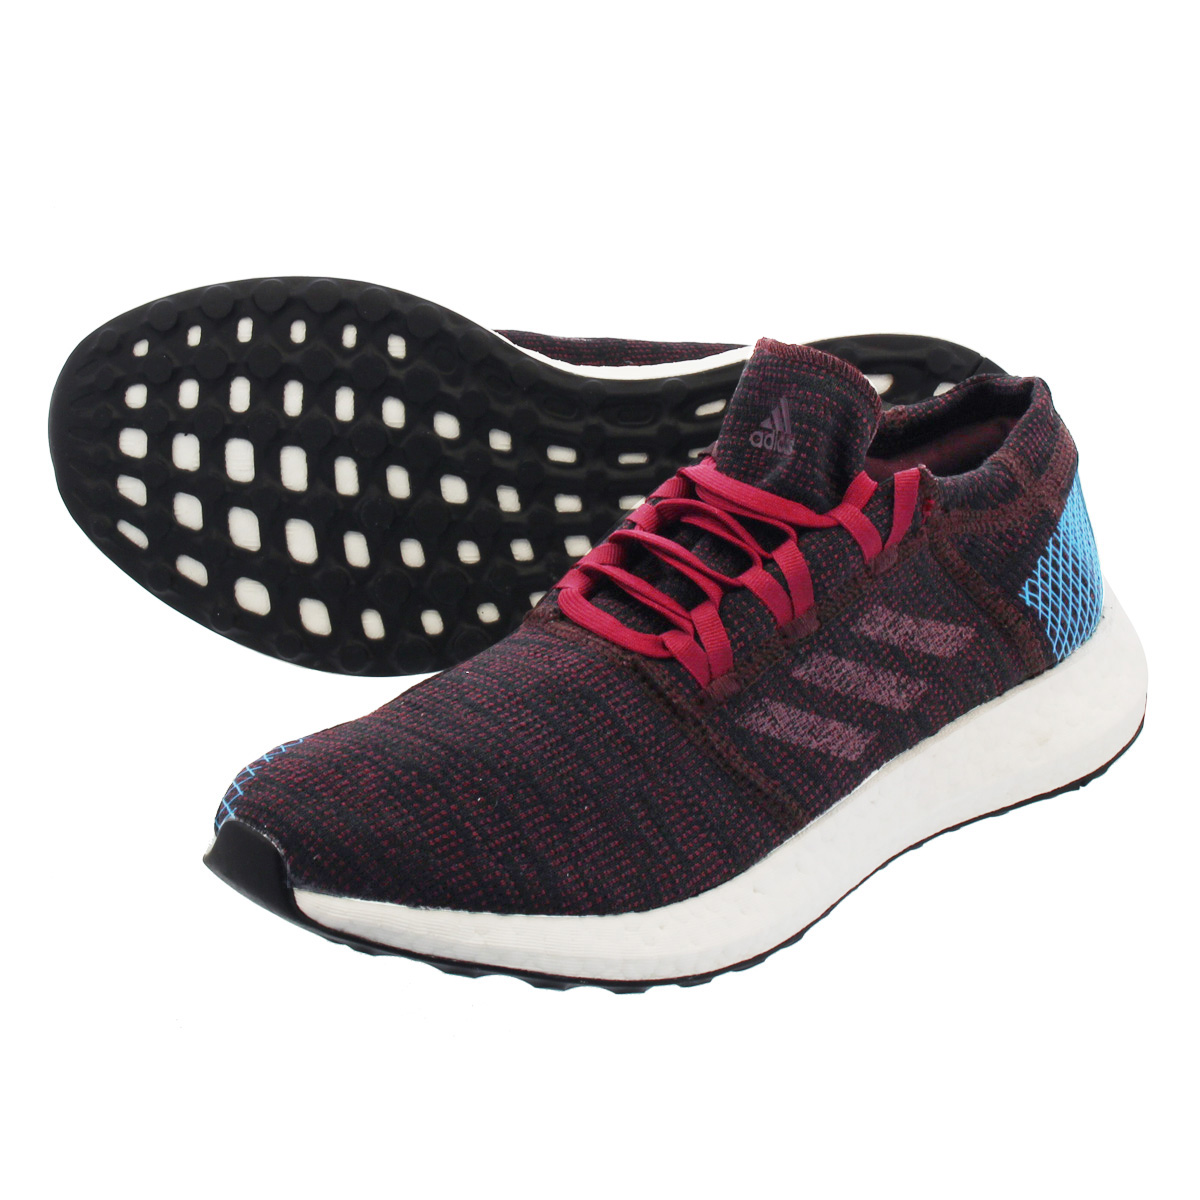 adidas PureBOOST GO アディダス ピュア ブースト GO NIGHT RED/NOBLE MAROON/BRIGHT BLUE ah2326